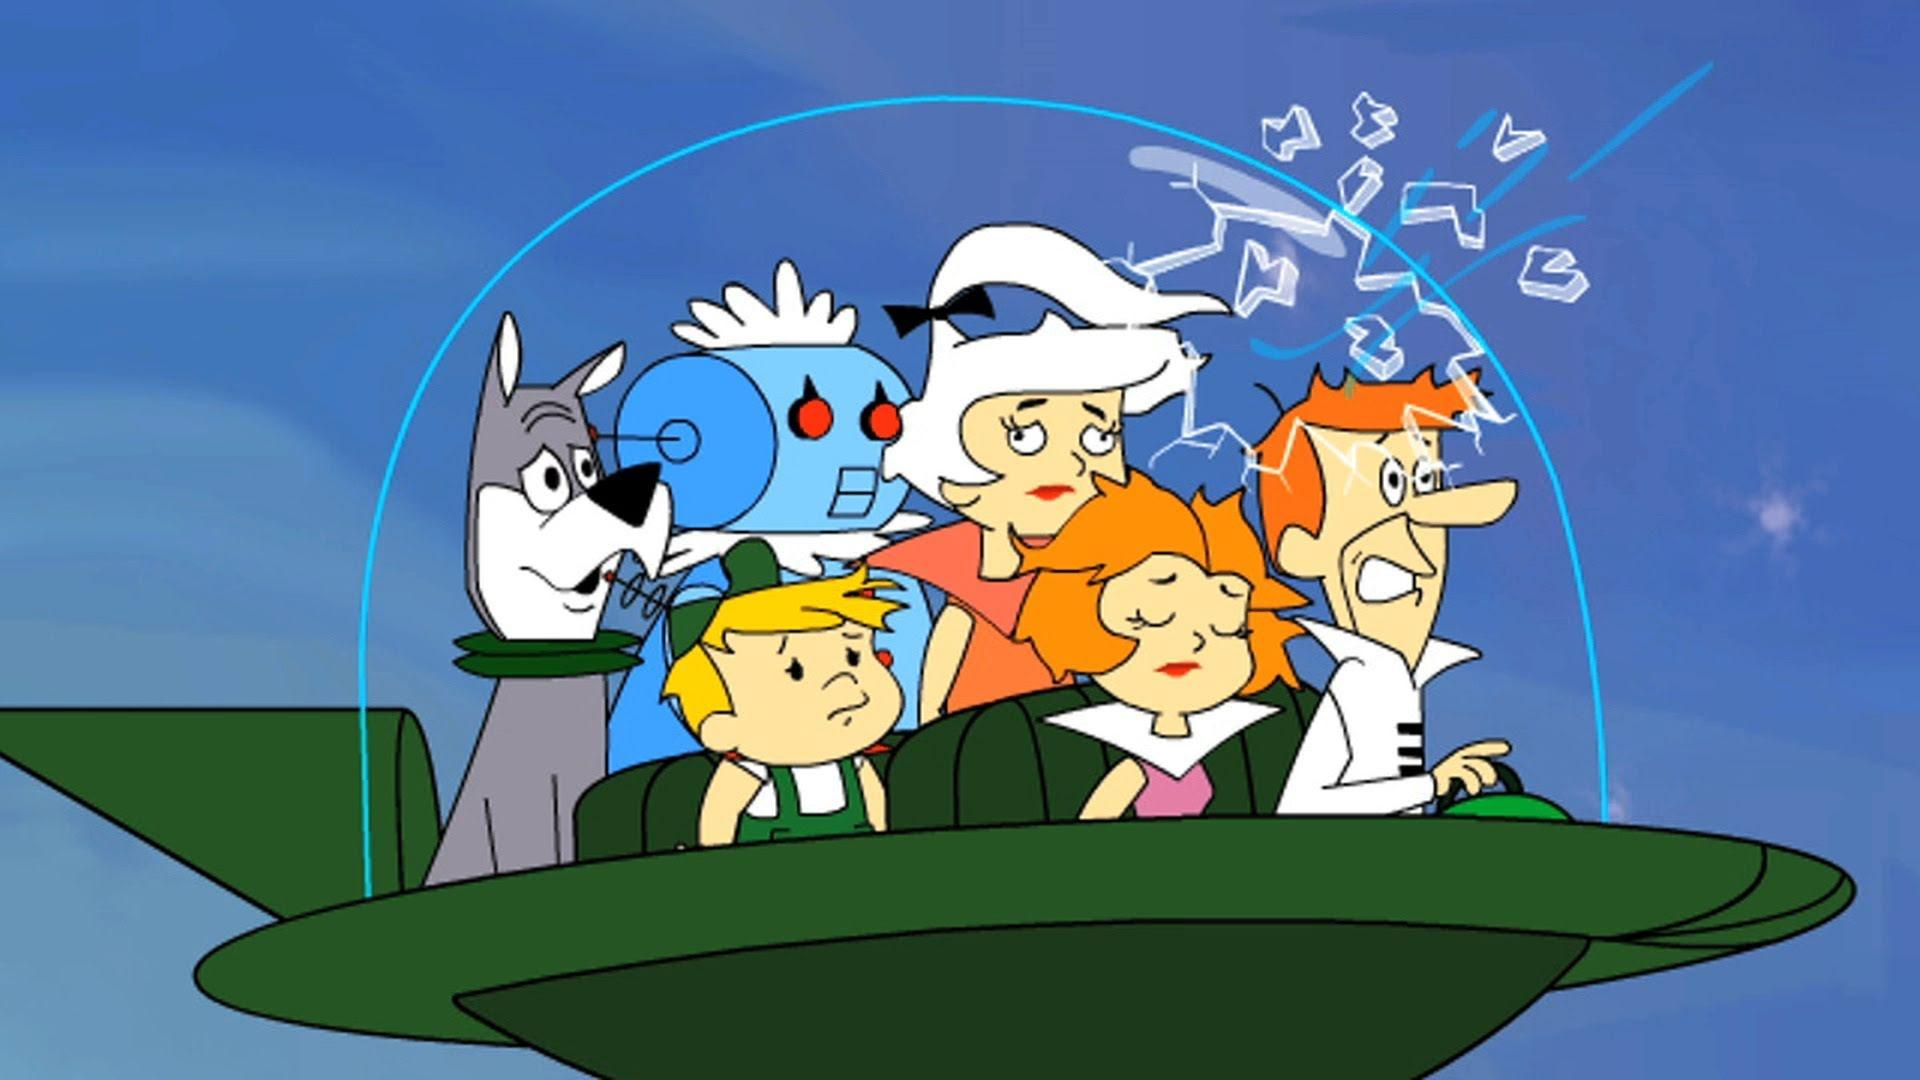 1920x1080 - The Jetsons Wallpapers 24